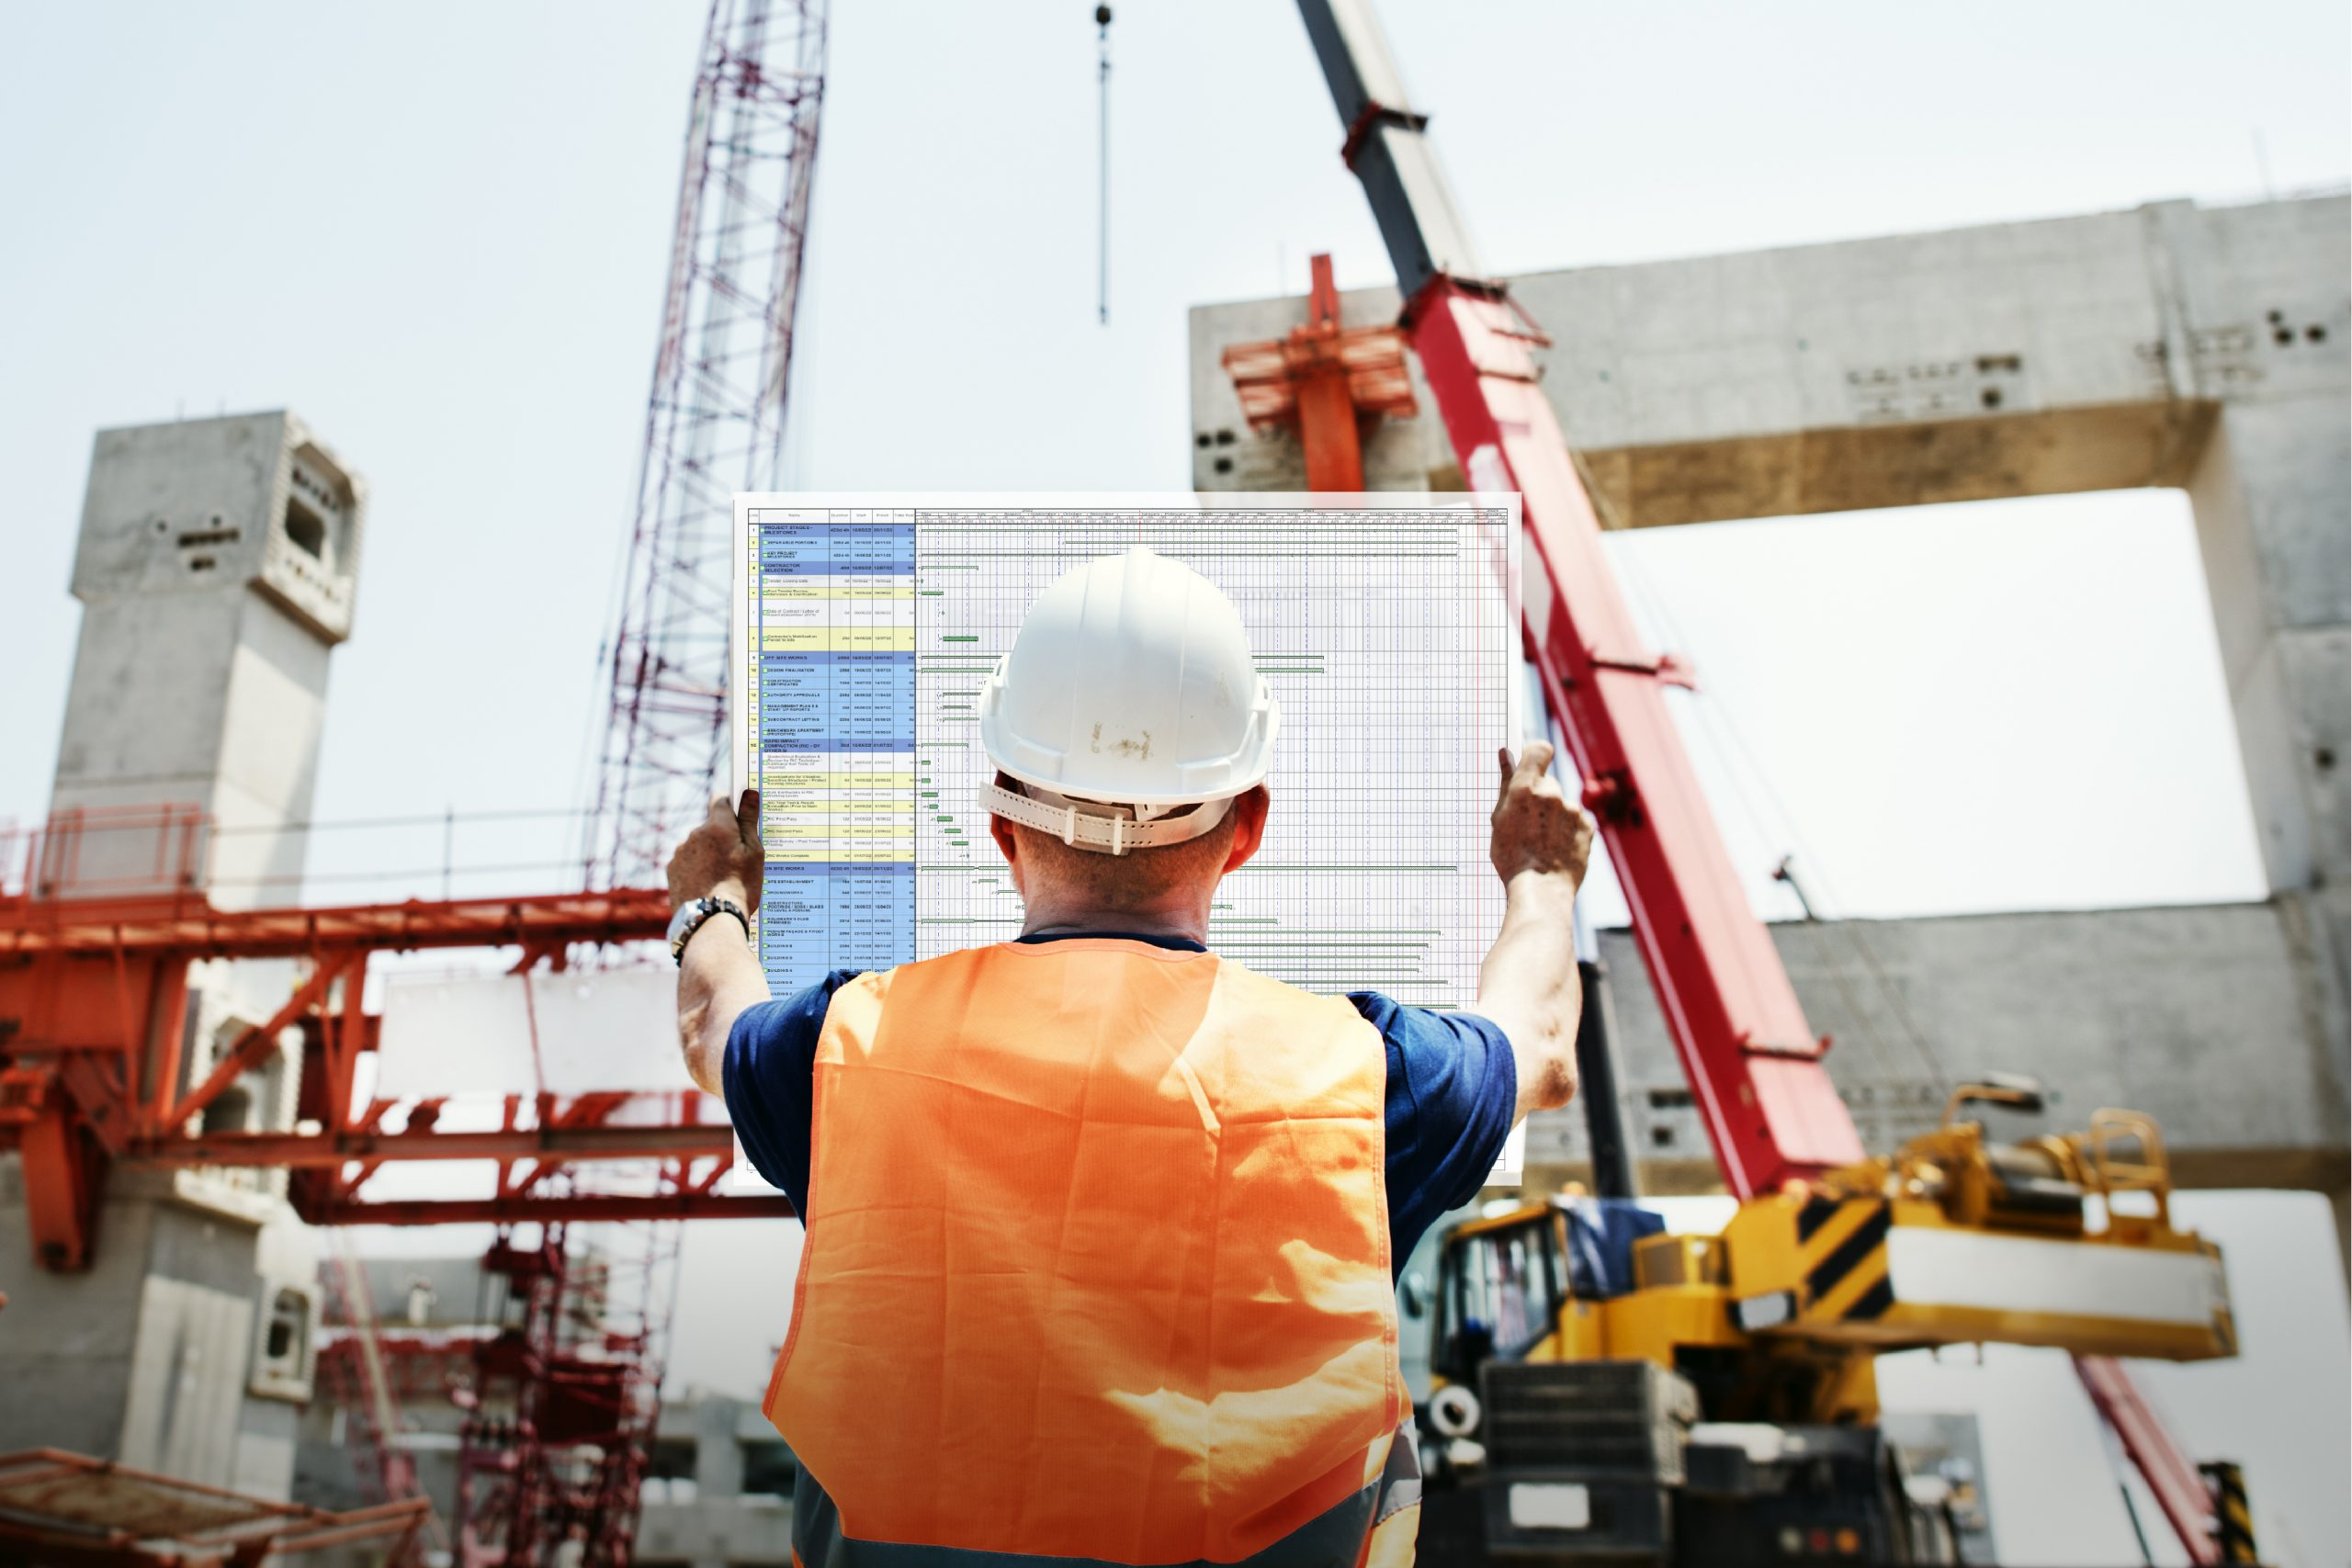 Solid Support construction scheduling